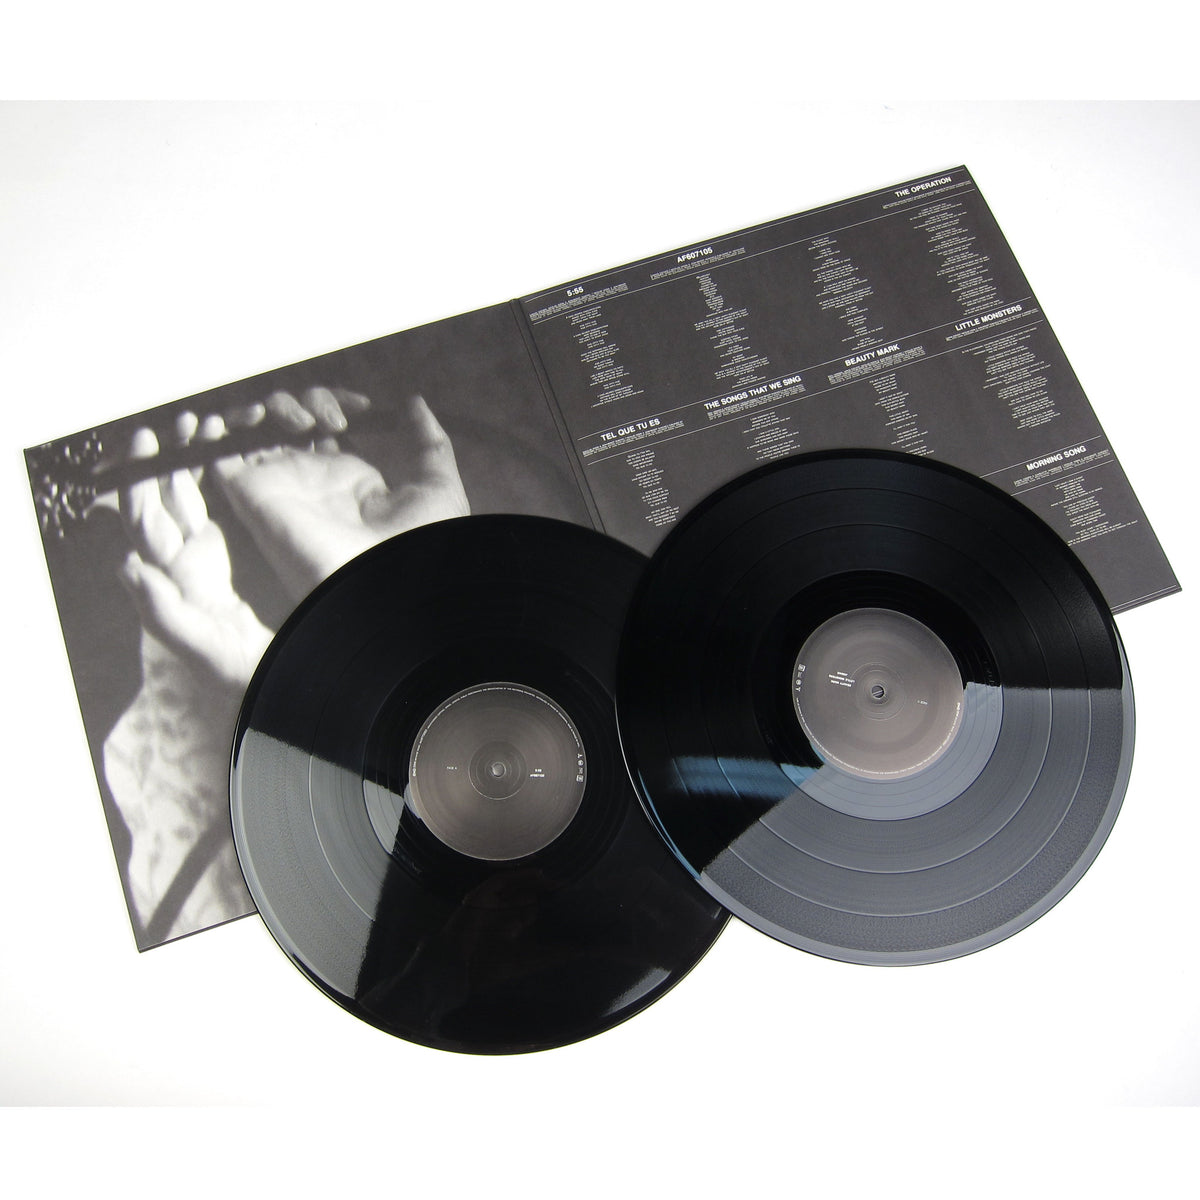 Charlotte Gainsbourg: 5:55 Vinyl 2LP+CD